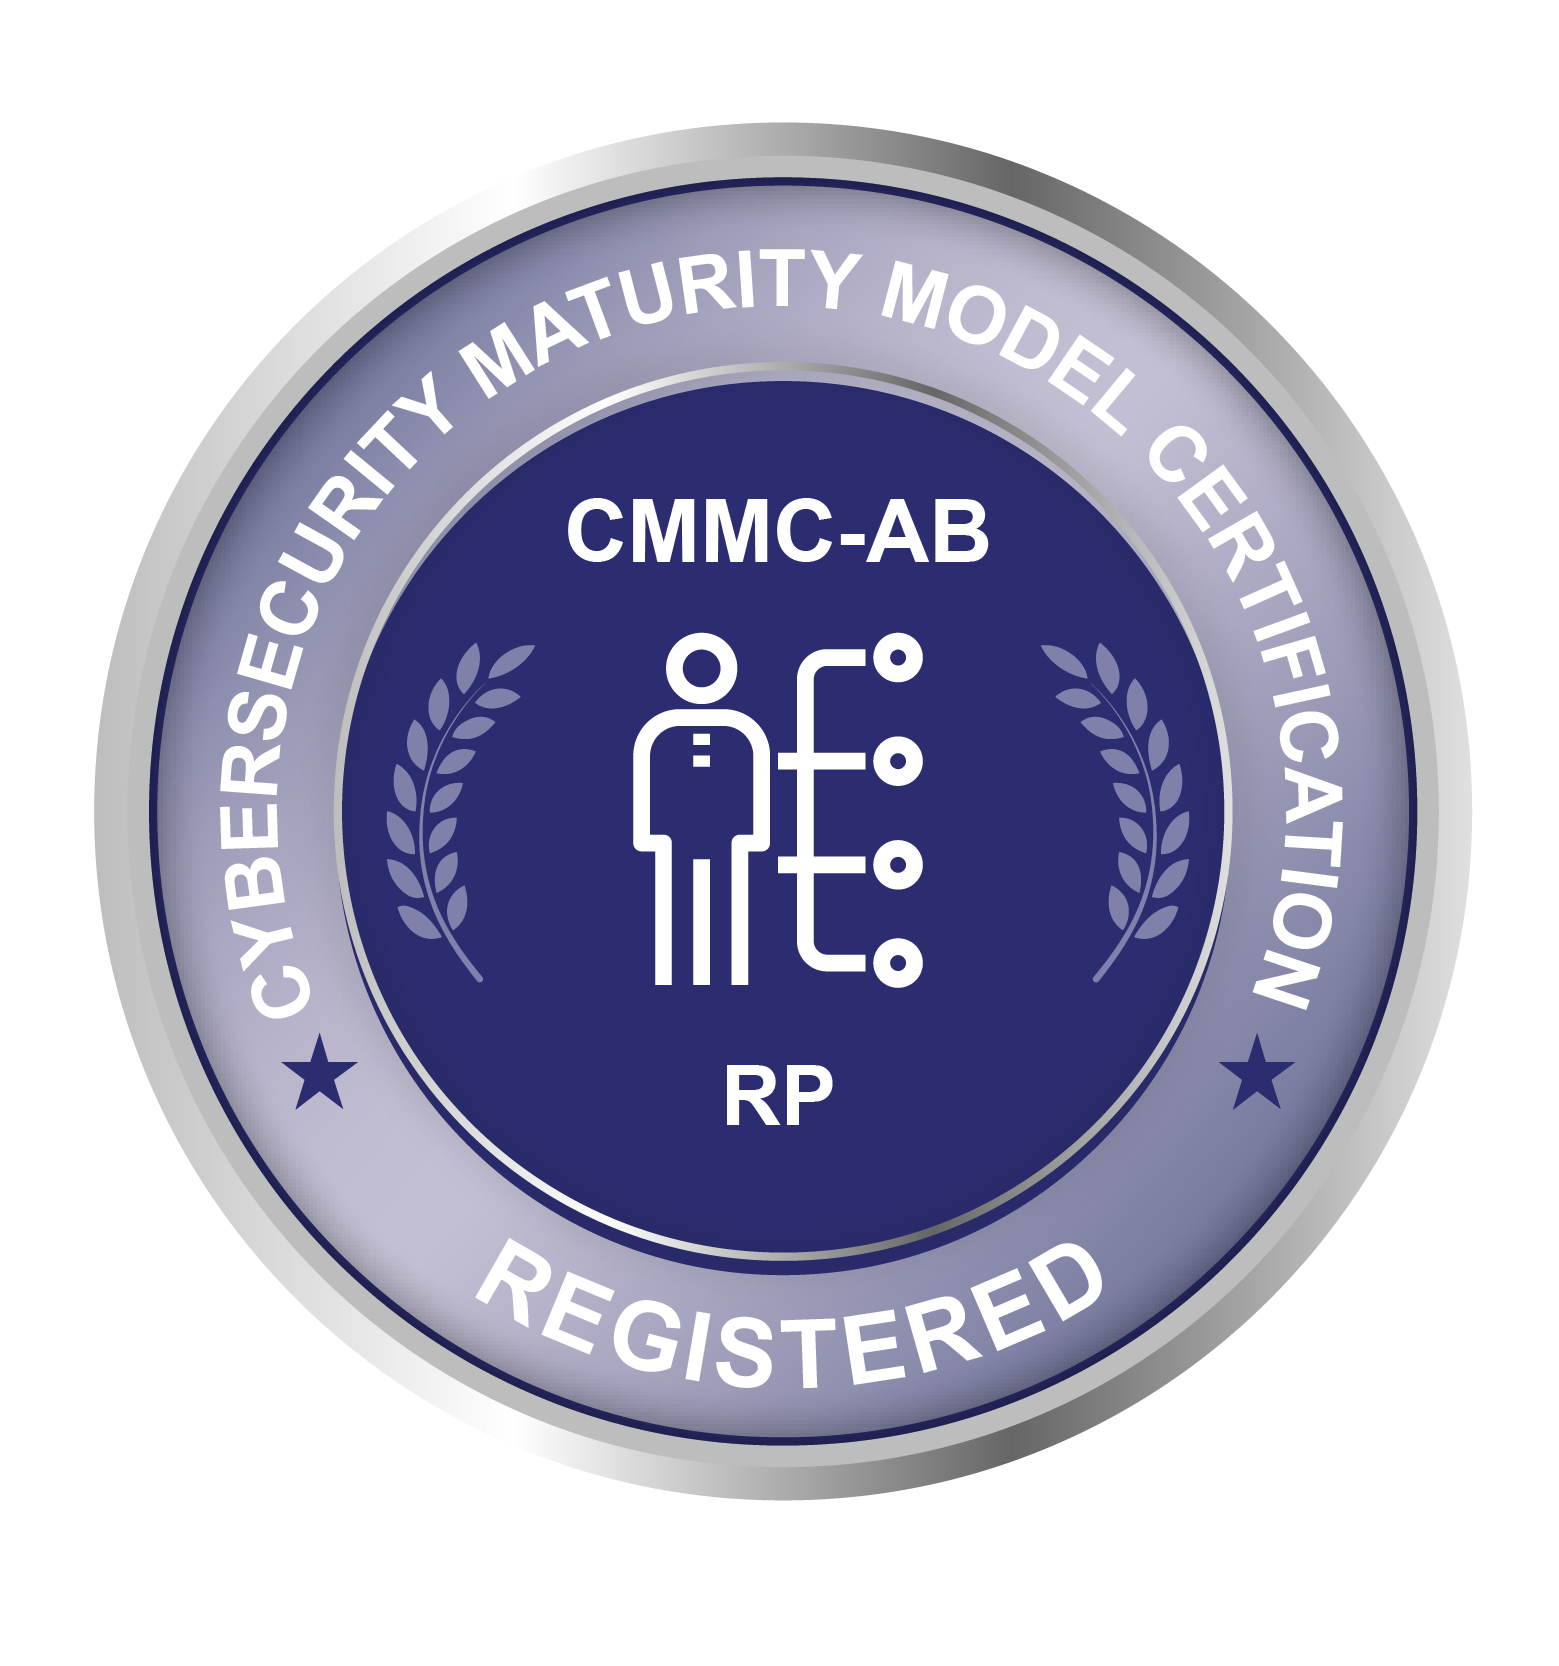 CMMC Registered Practitioners